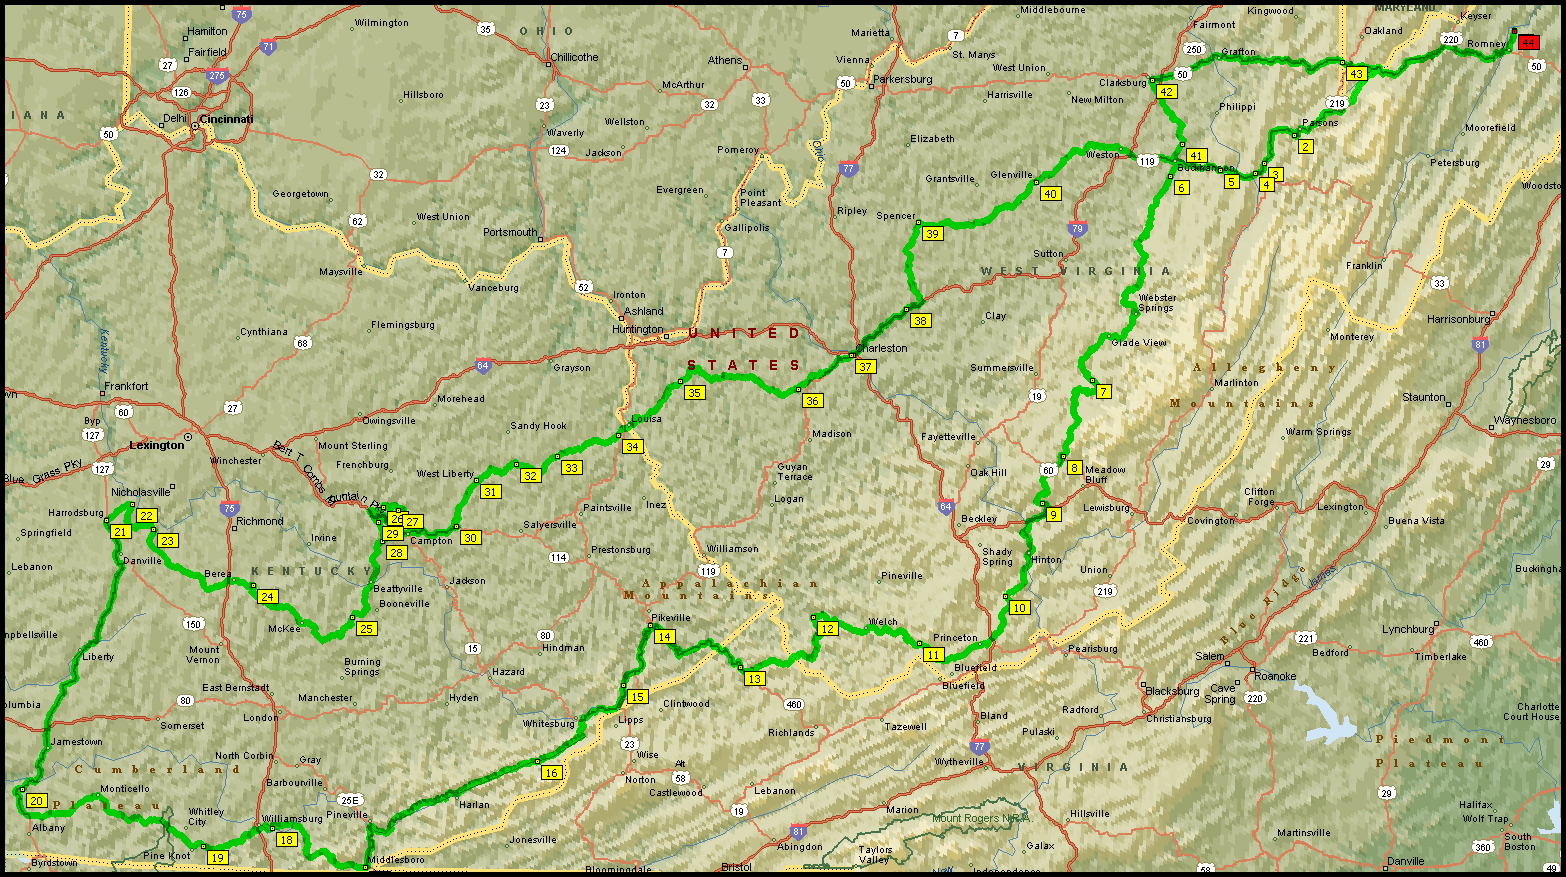 Map Ky Wv^@# Motorcycle Map Of Wv on map of md, map of raleigh county west virginia, map of ohio, map of tx, map of pennsylvania, map of wi, map projection, map of virginia with cities, map of ky, map of west virginia cities, map of west virginia only, map of wy, map of tennessee, map of west virginia and virginia together, map of ct, map of nc, map of wvu, map of west virginia mountains, map of elkins west virginia, map of va,